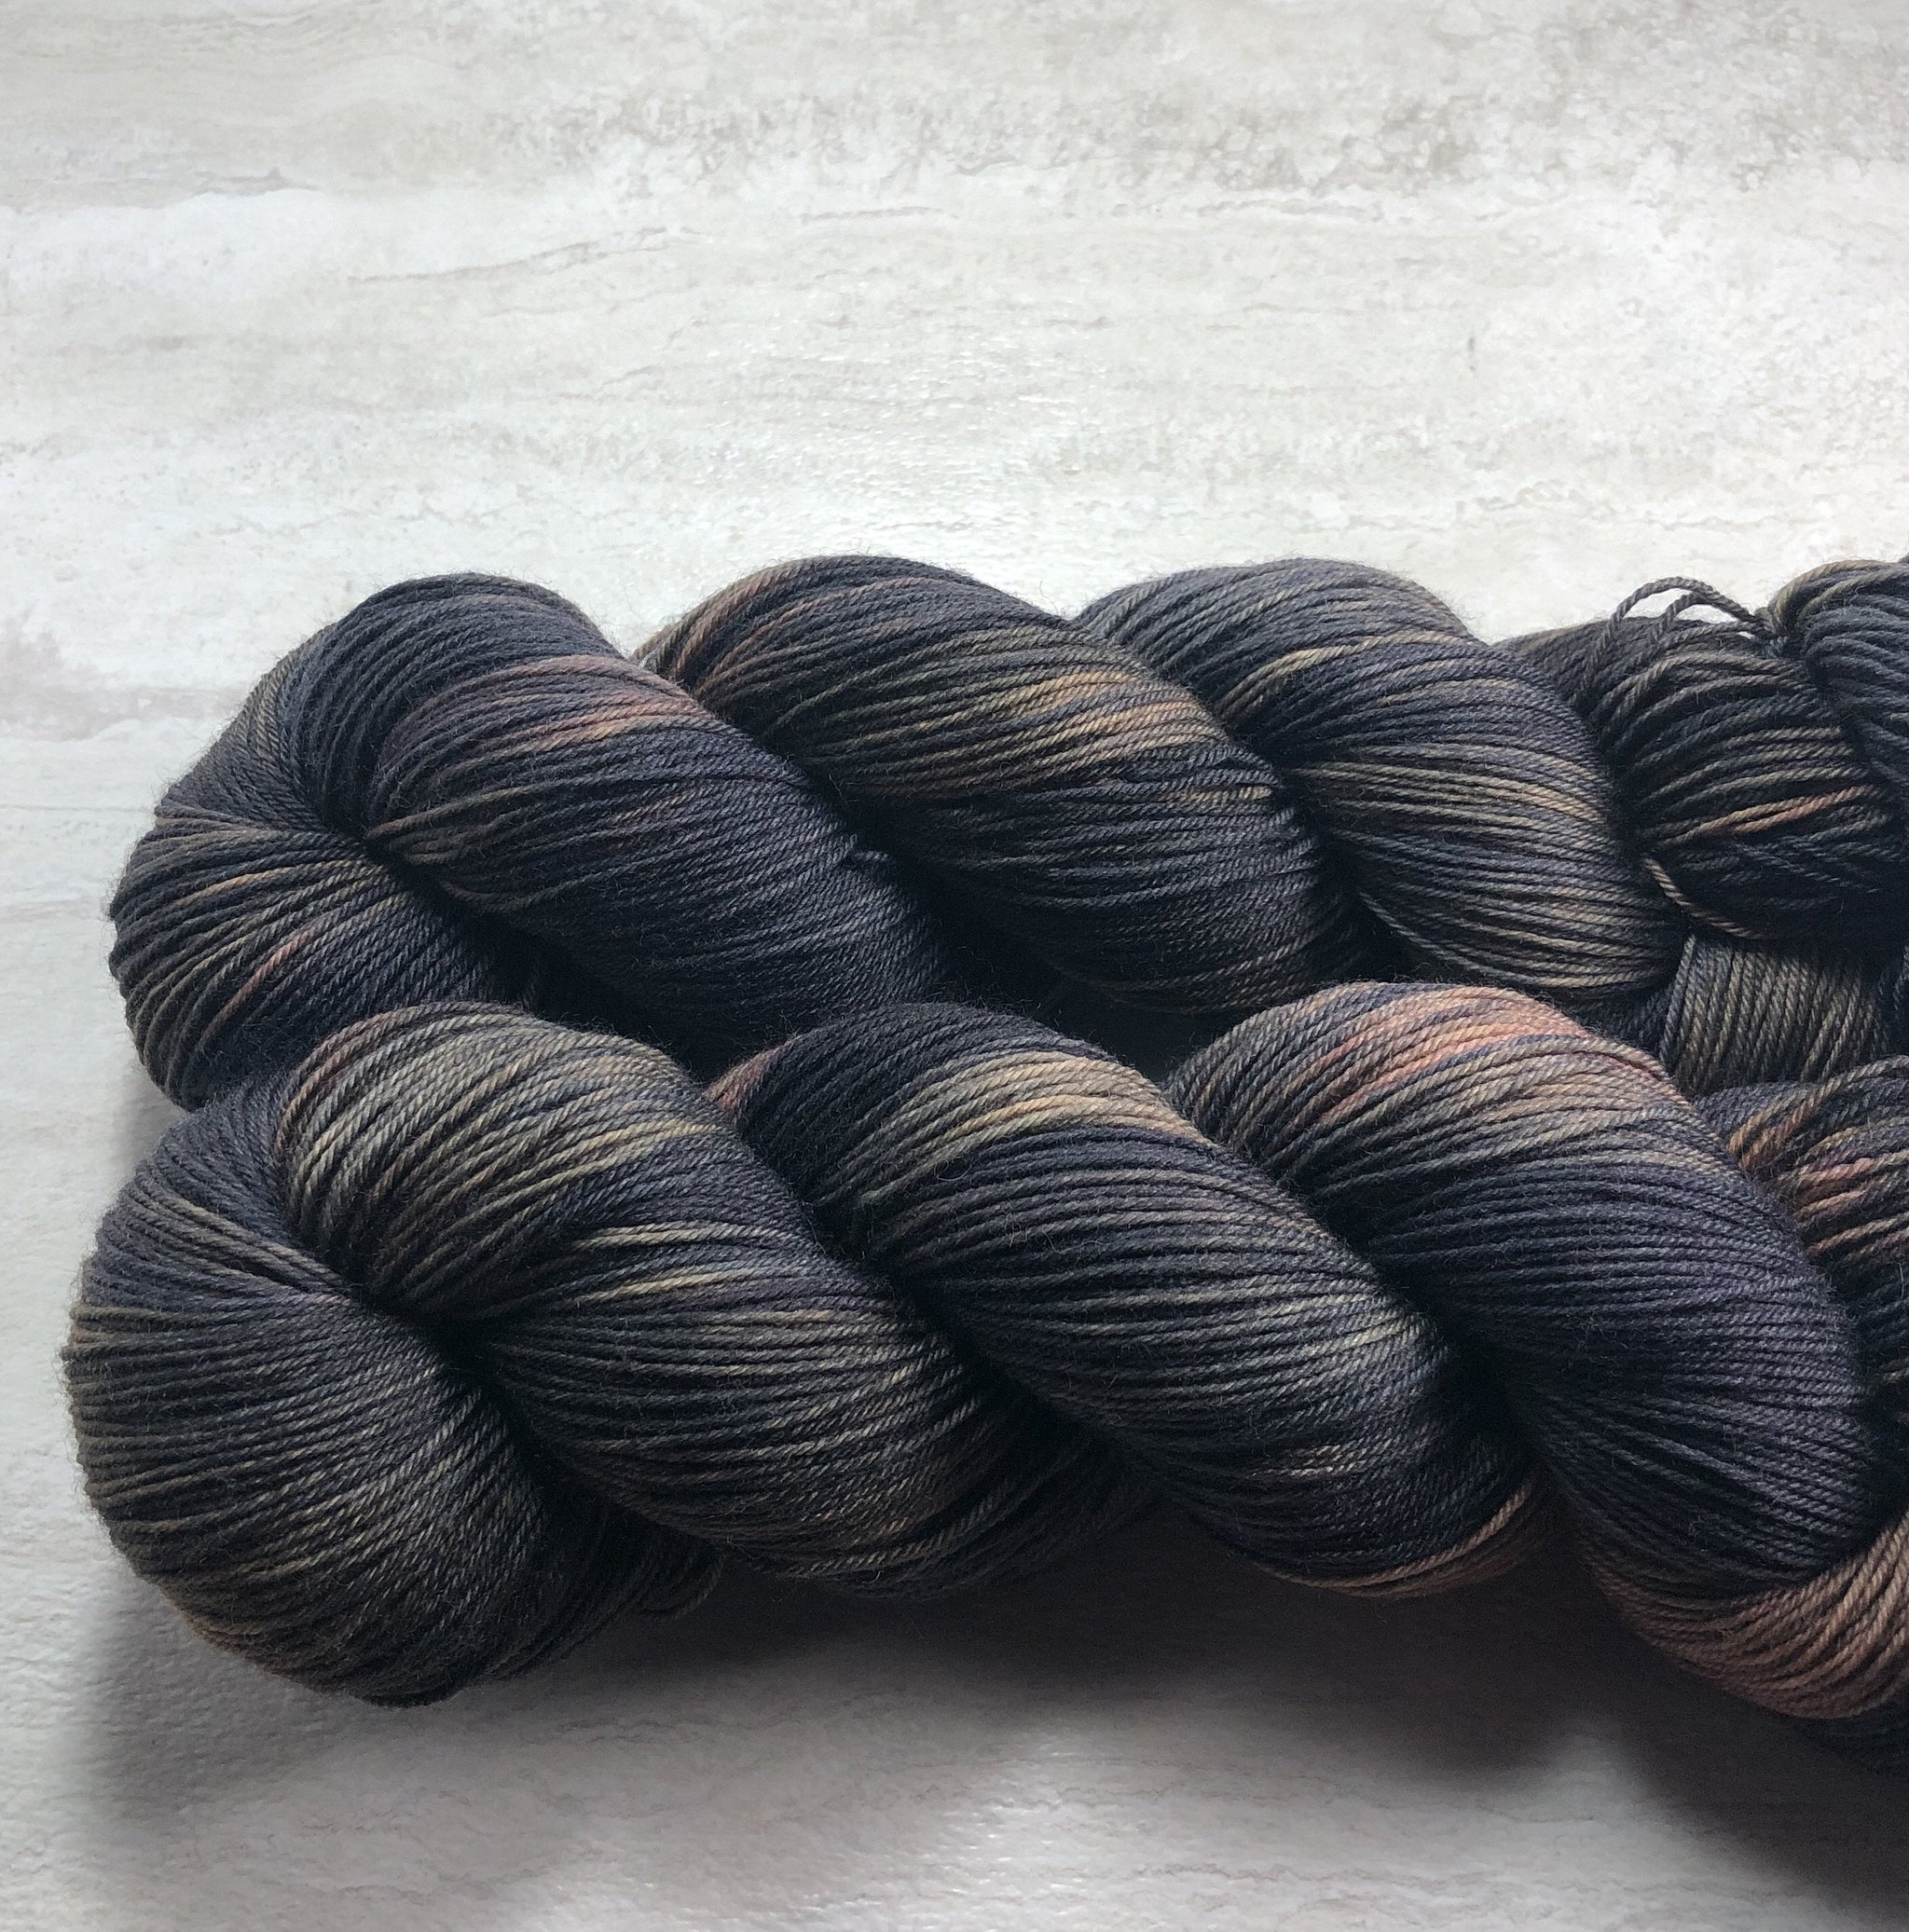 Black Forest - Squish Wish Sock Yarn Dye is Cast Yarns